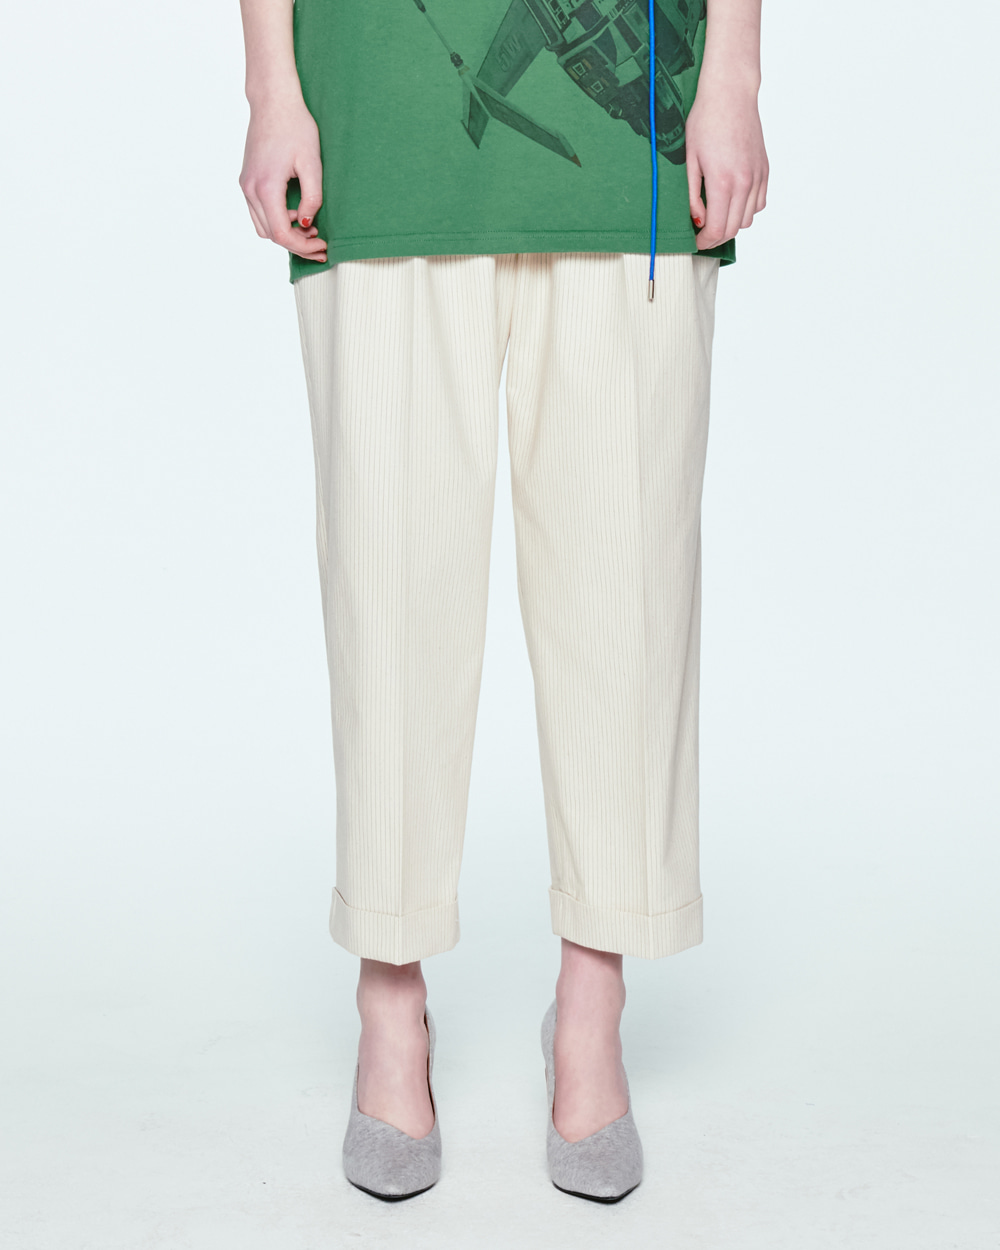 SS20 HIGH WAIST BELTED IVORY PANTS